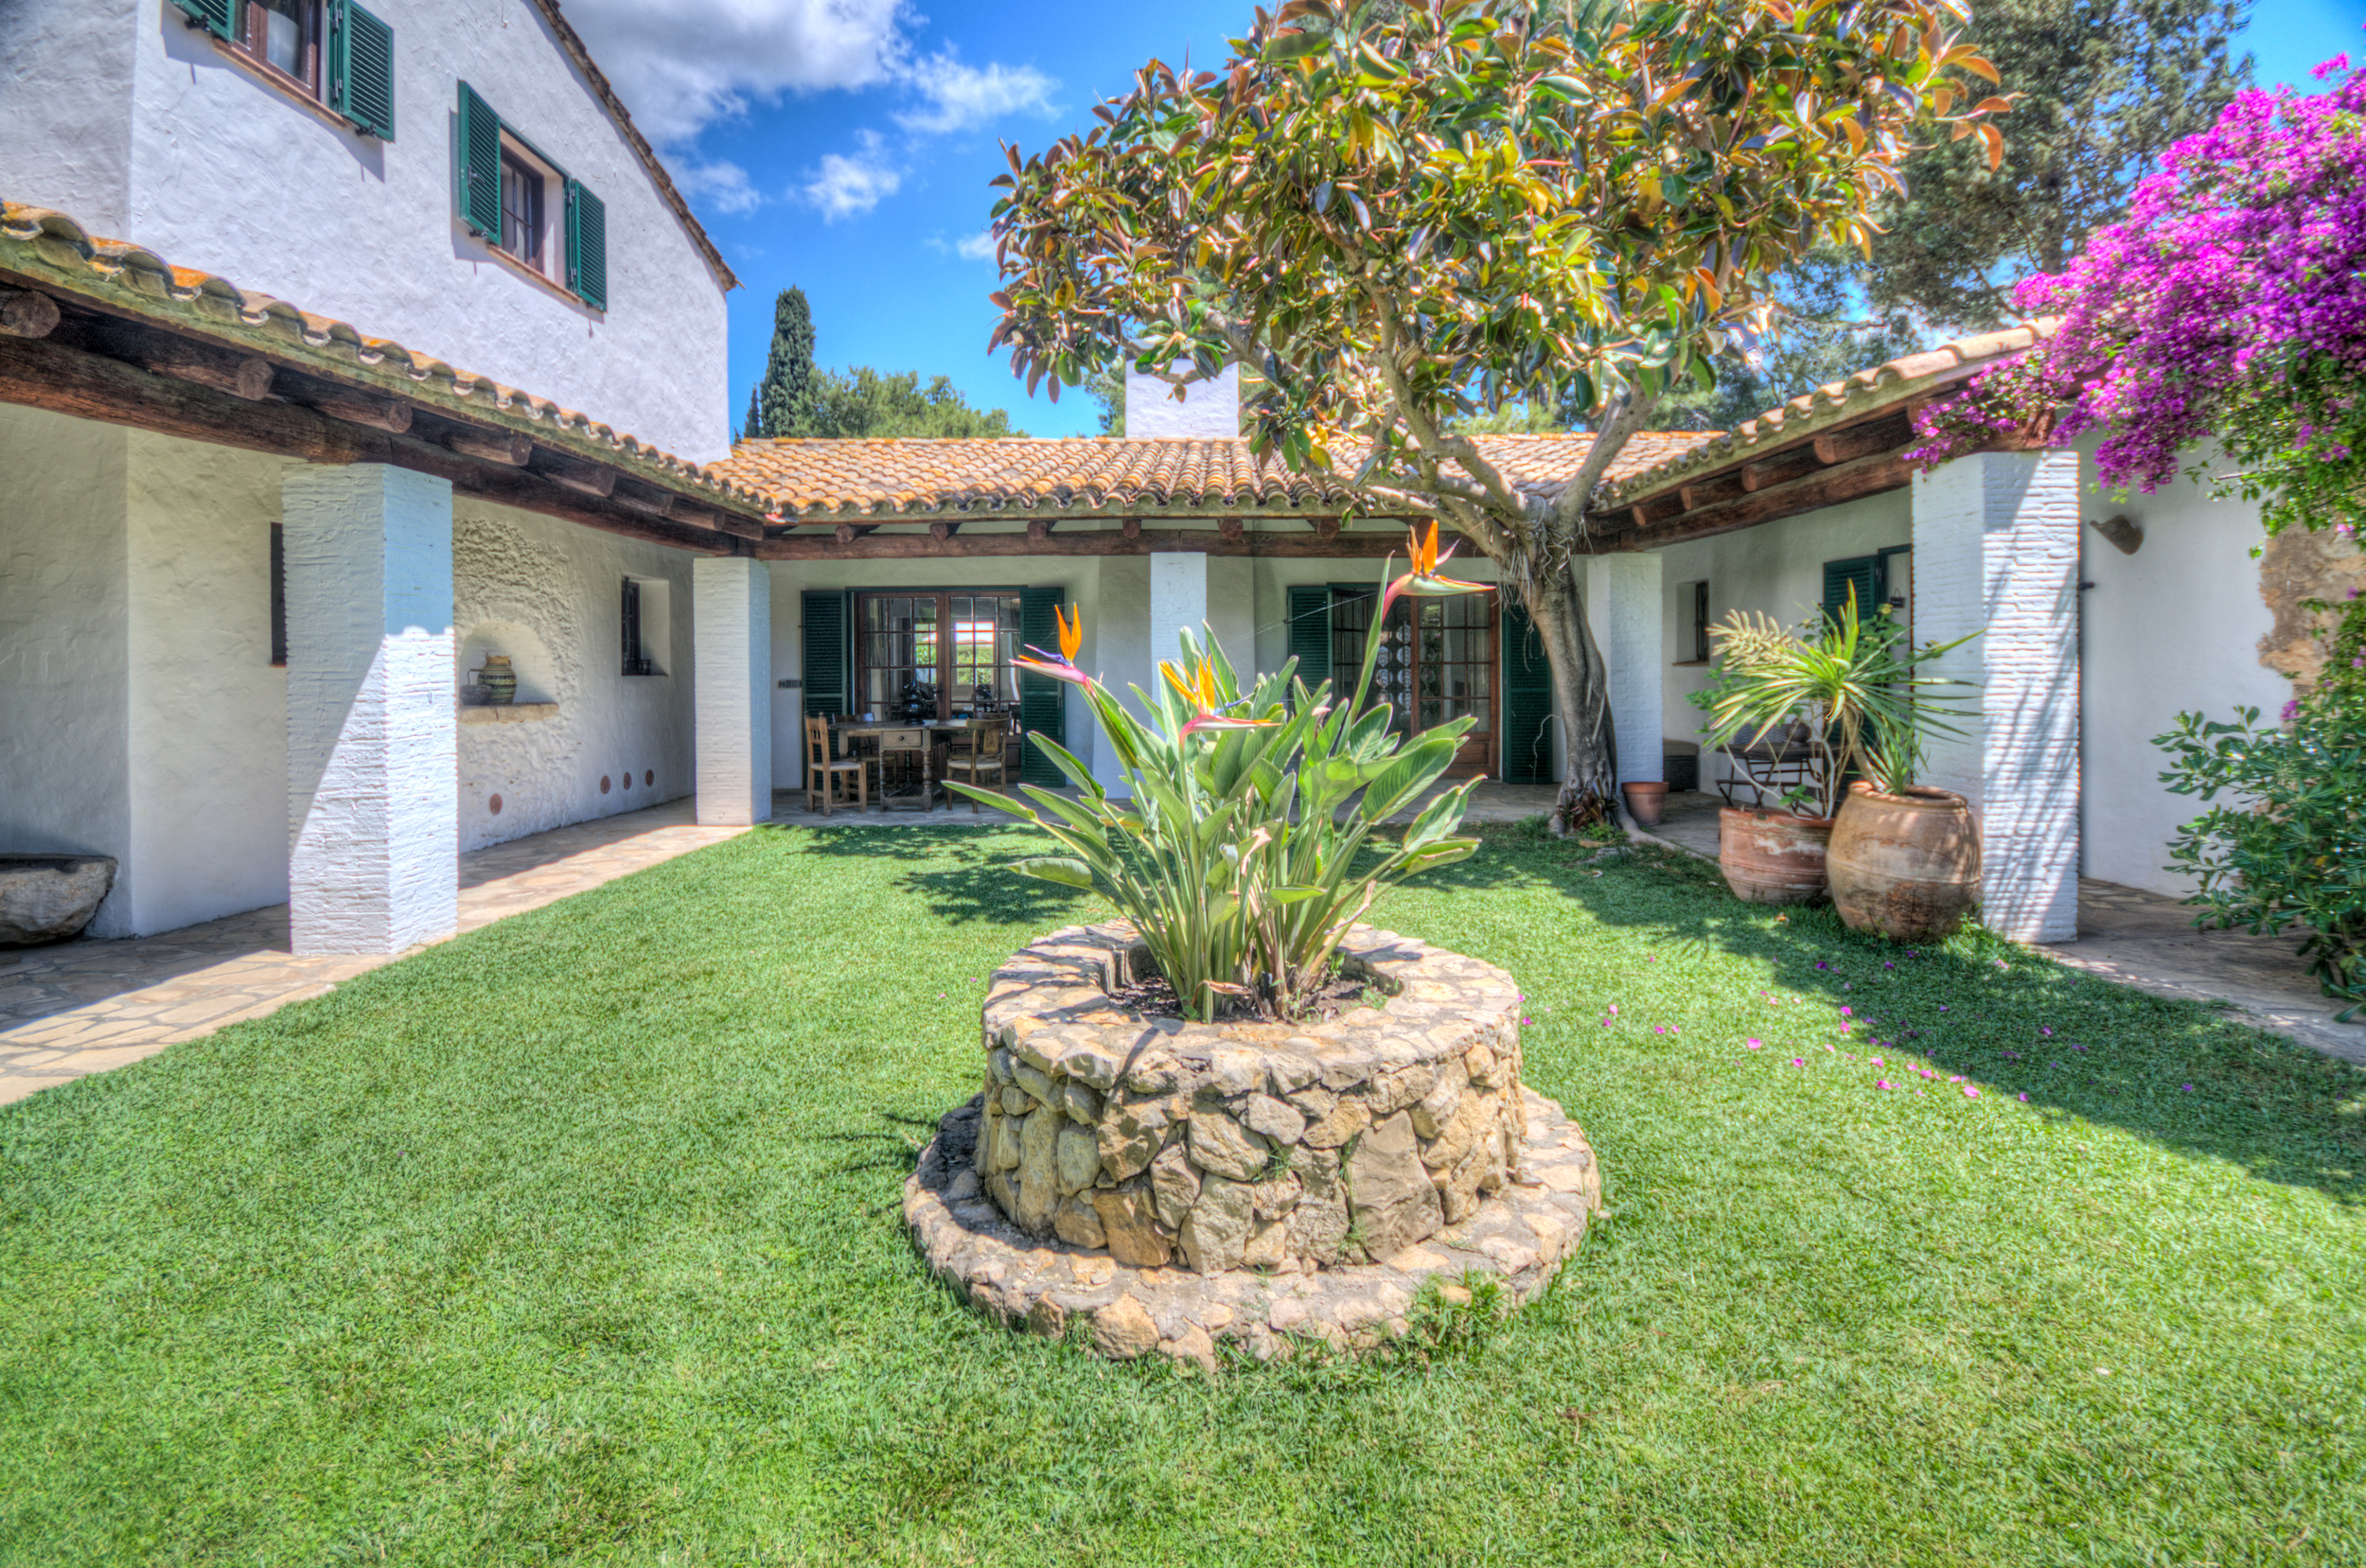 29 Masia Pairal patio with access main vill and wing.jpg